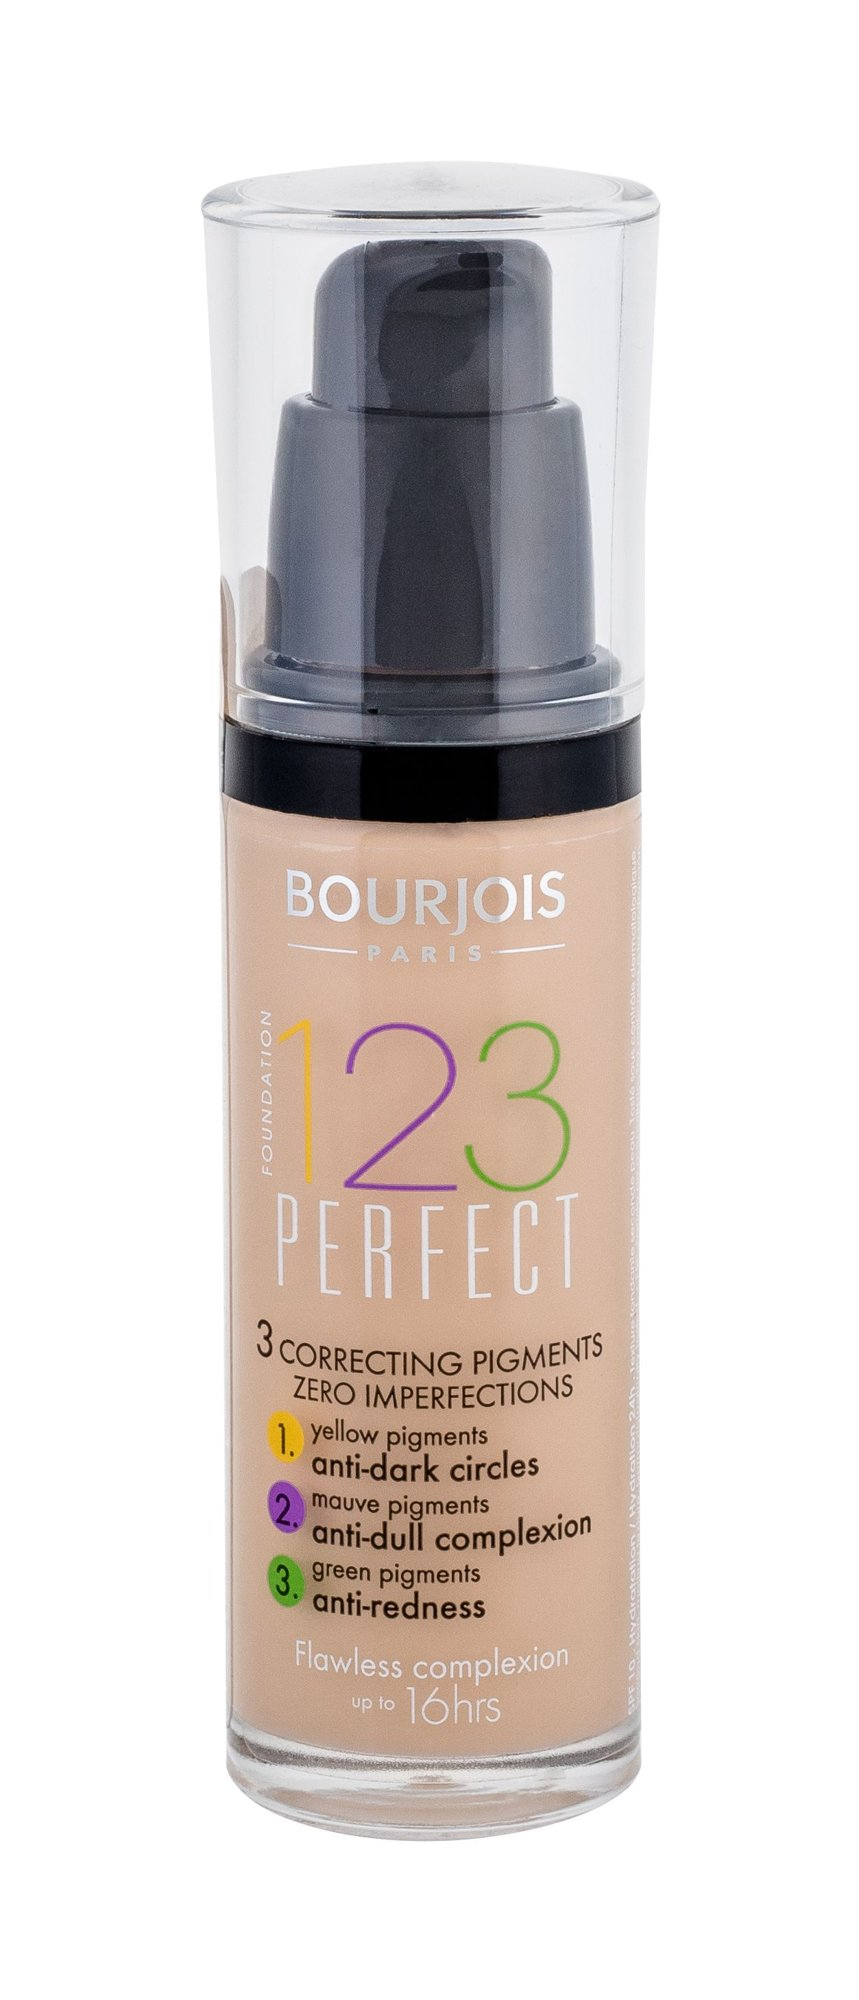 BOURJOIS Paris 123 Perfect Cosmetic 30ml 51 Light Vanilla